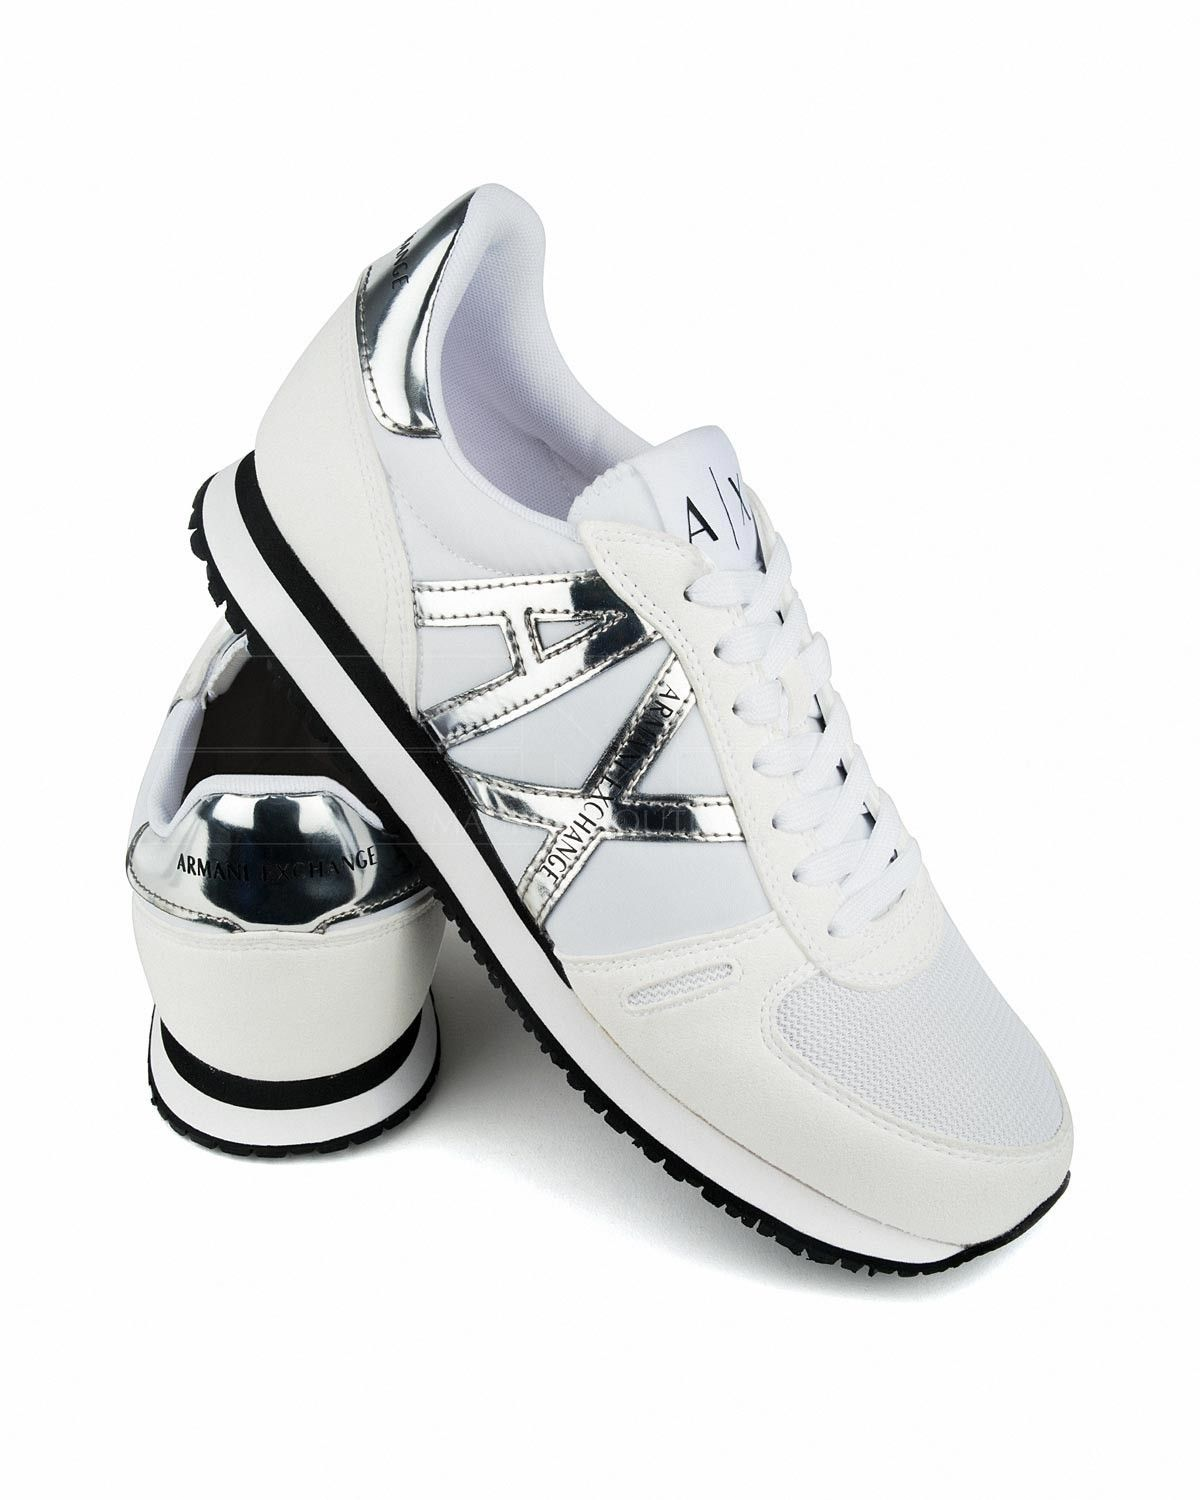 timeless design 4ec68 dbc29 ARMANI EXCHANGE © Mens Shoes ✶ White  BEST PRICE